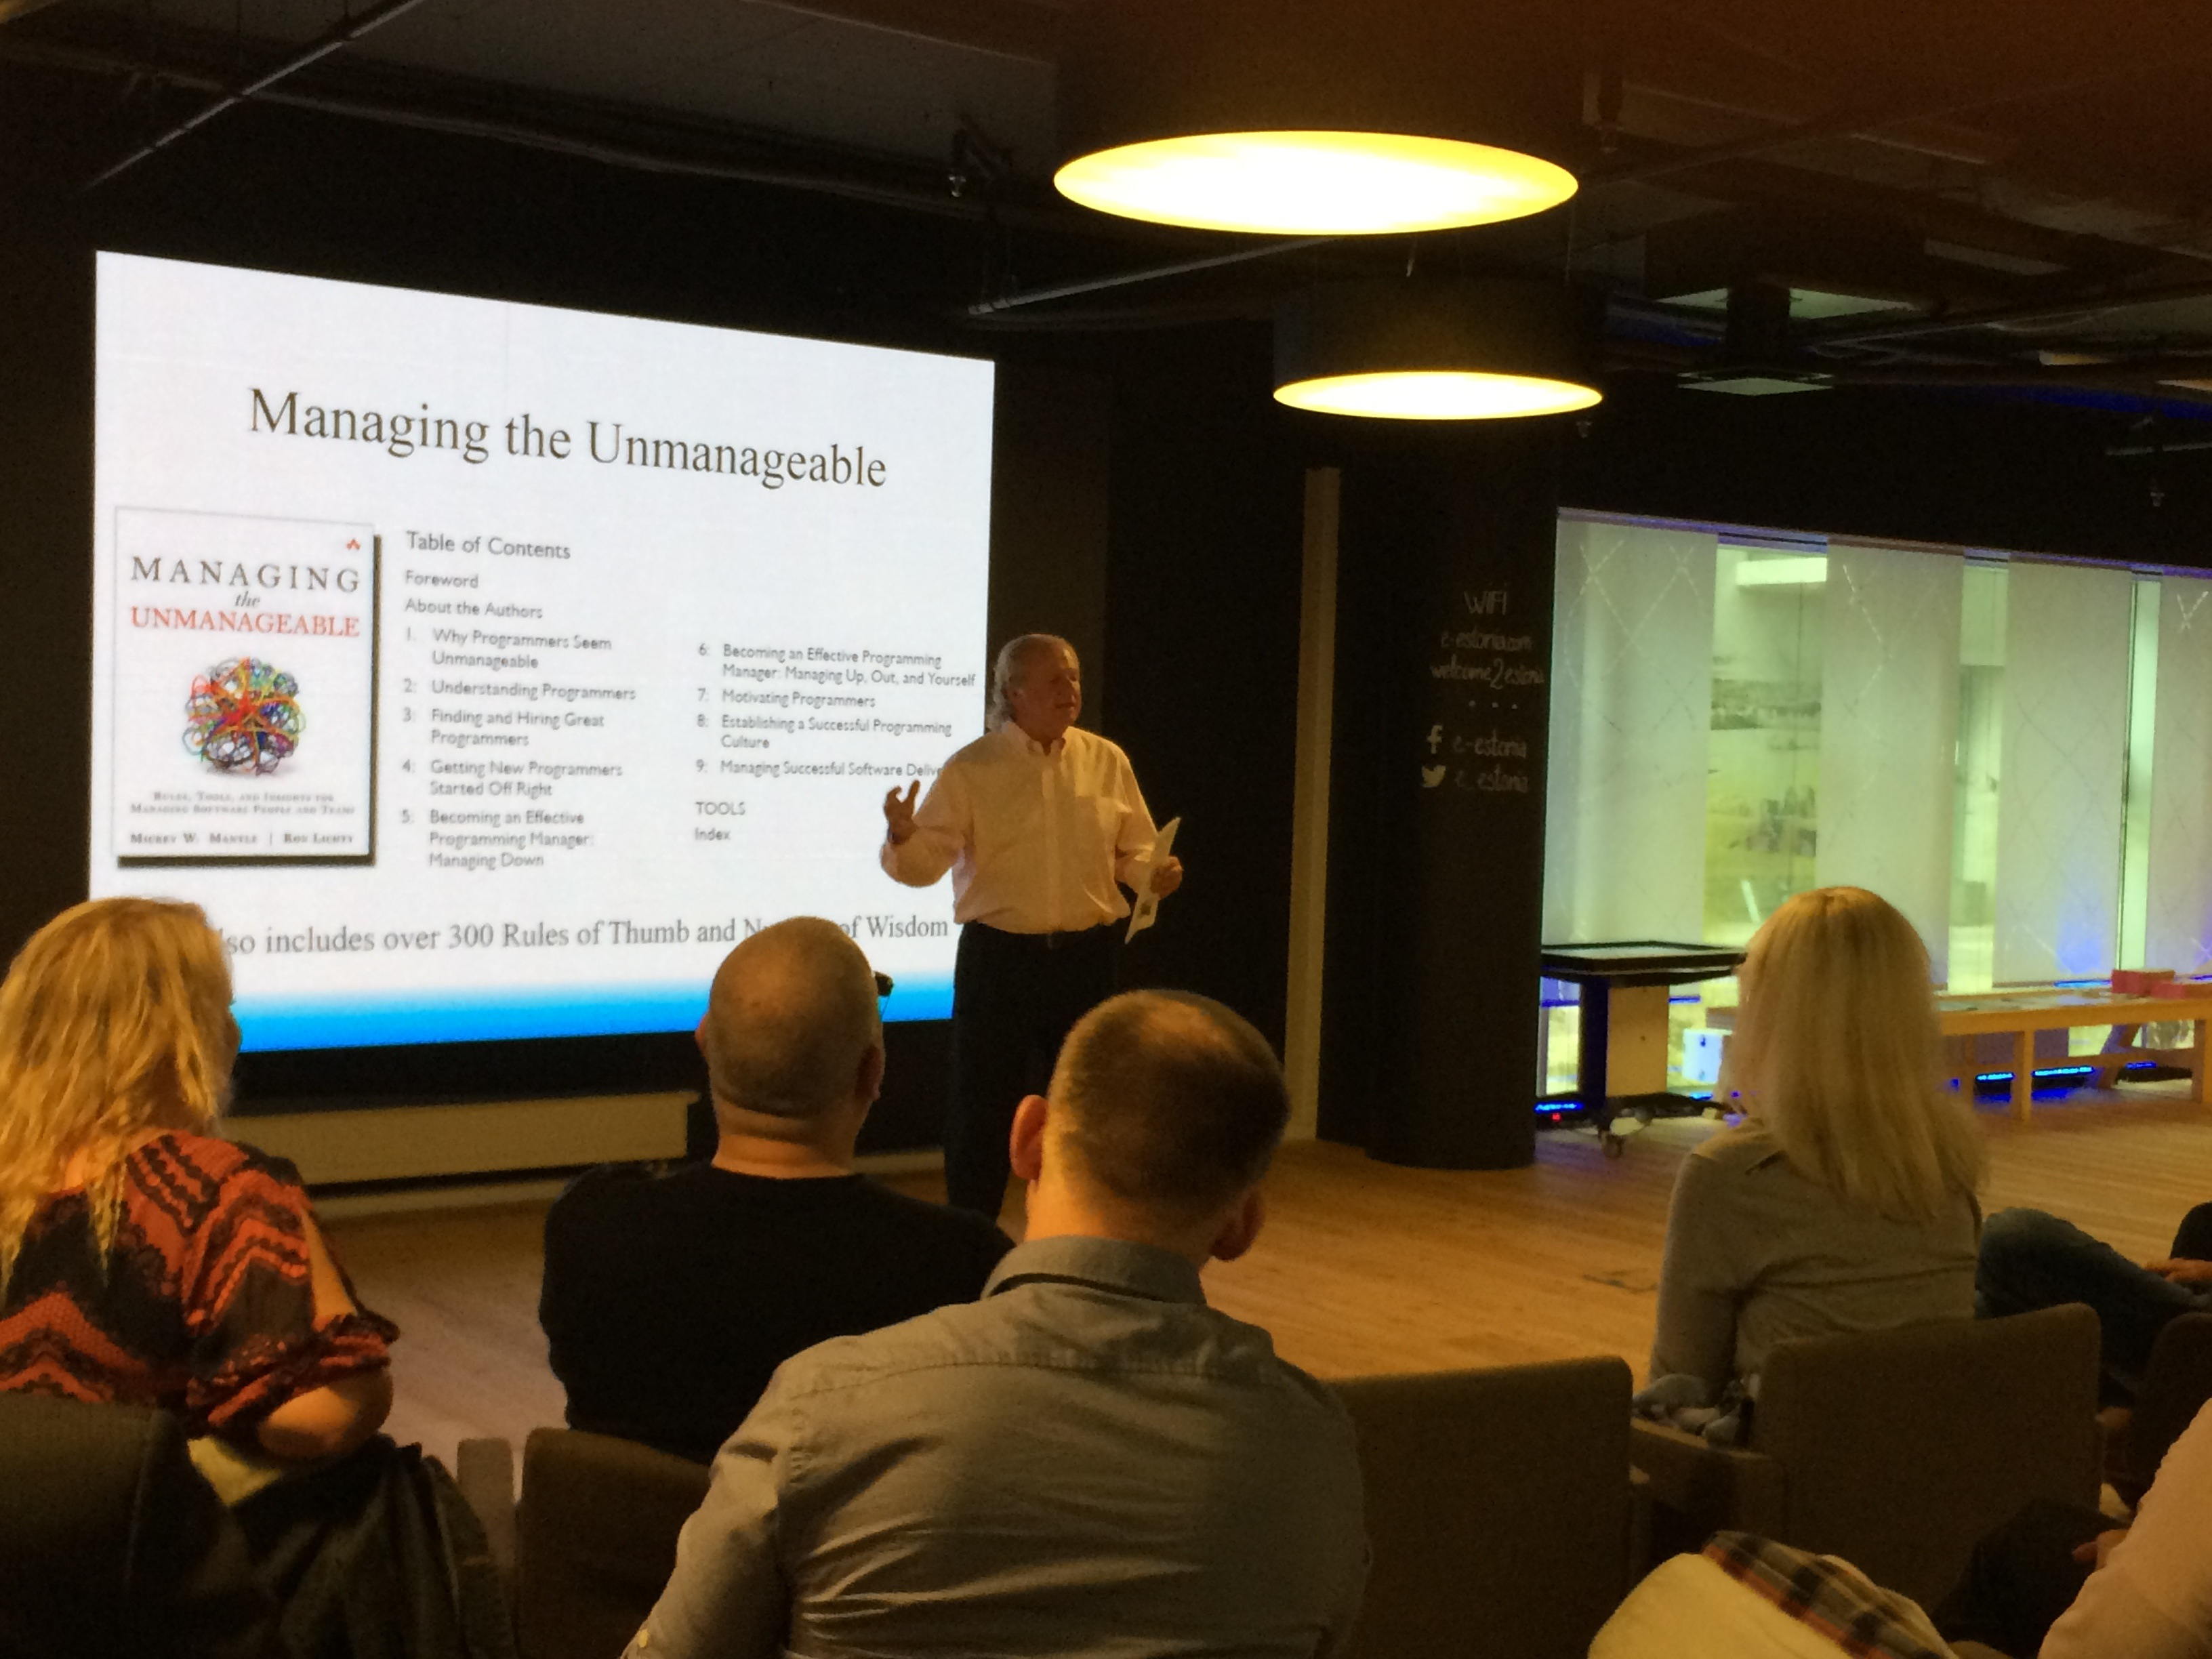 Co-author Mickey Mantle presenting Managing Using Rules of Thumb to the Estonian Association of IT, May 2015.